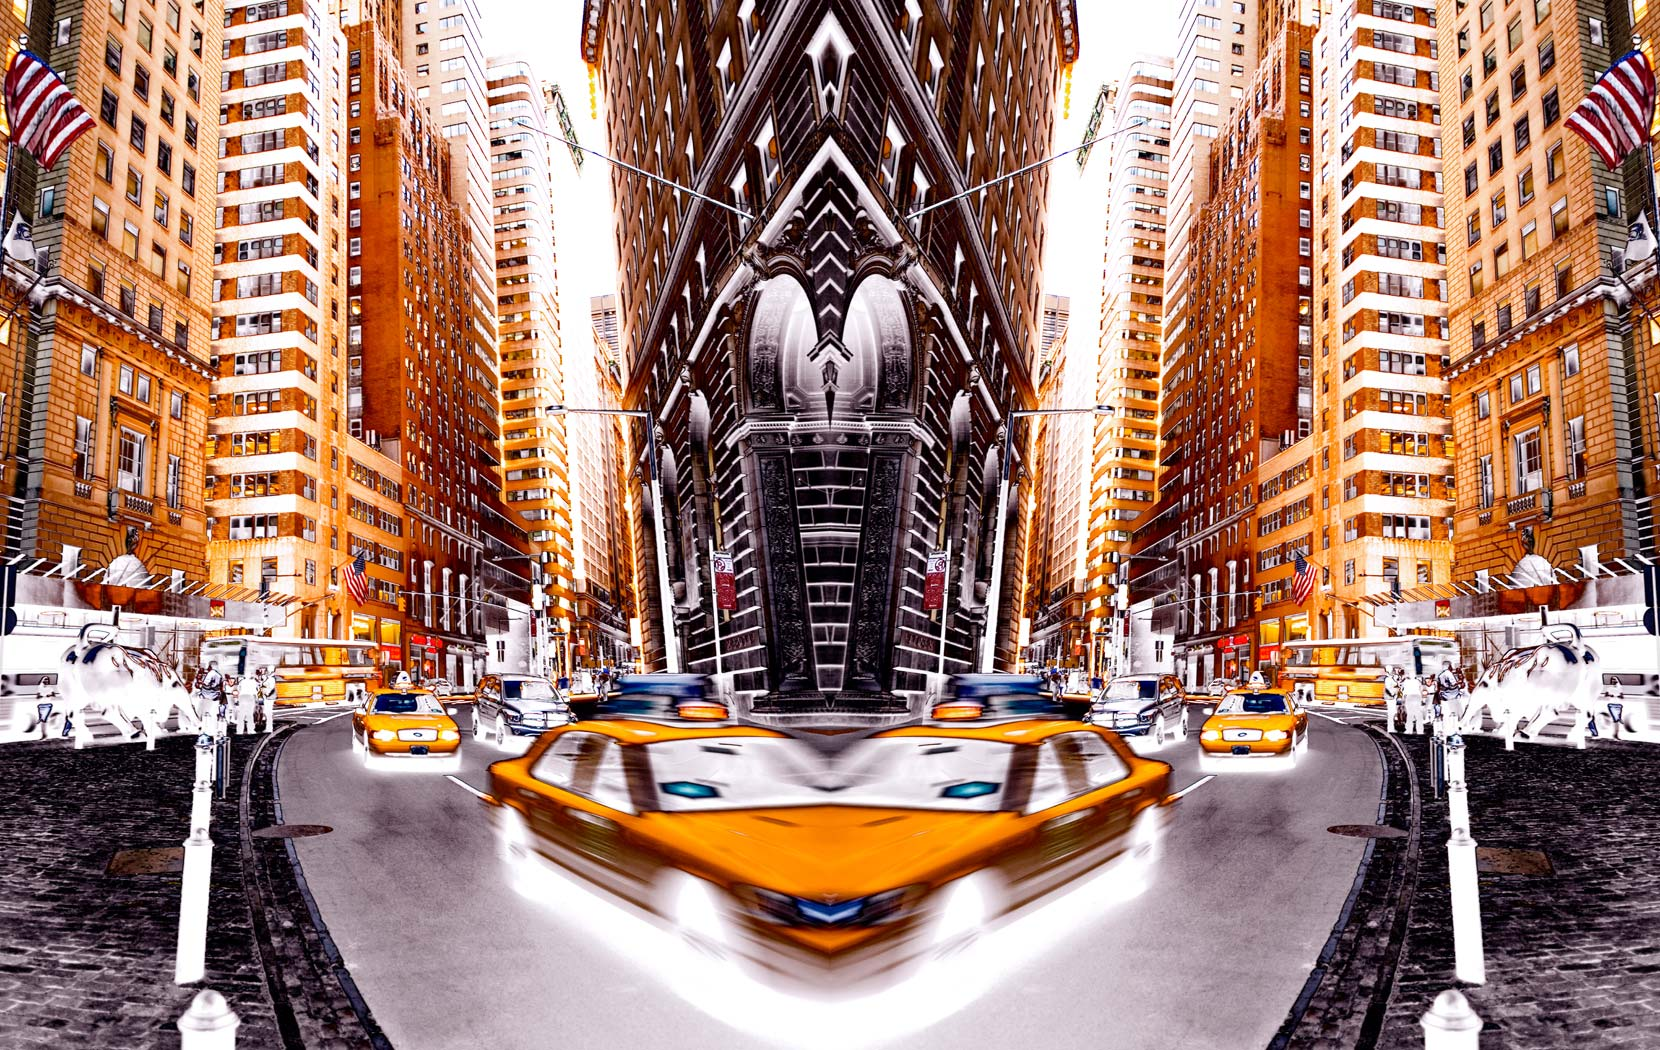 Guillaume-Corpart-Chaosopolis-NYC-02